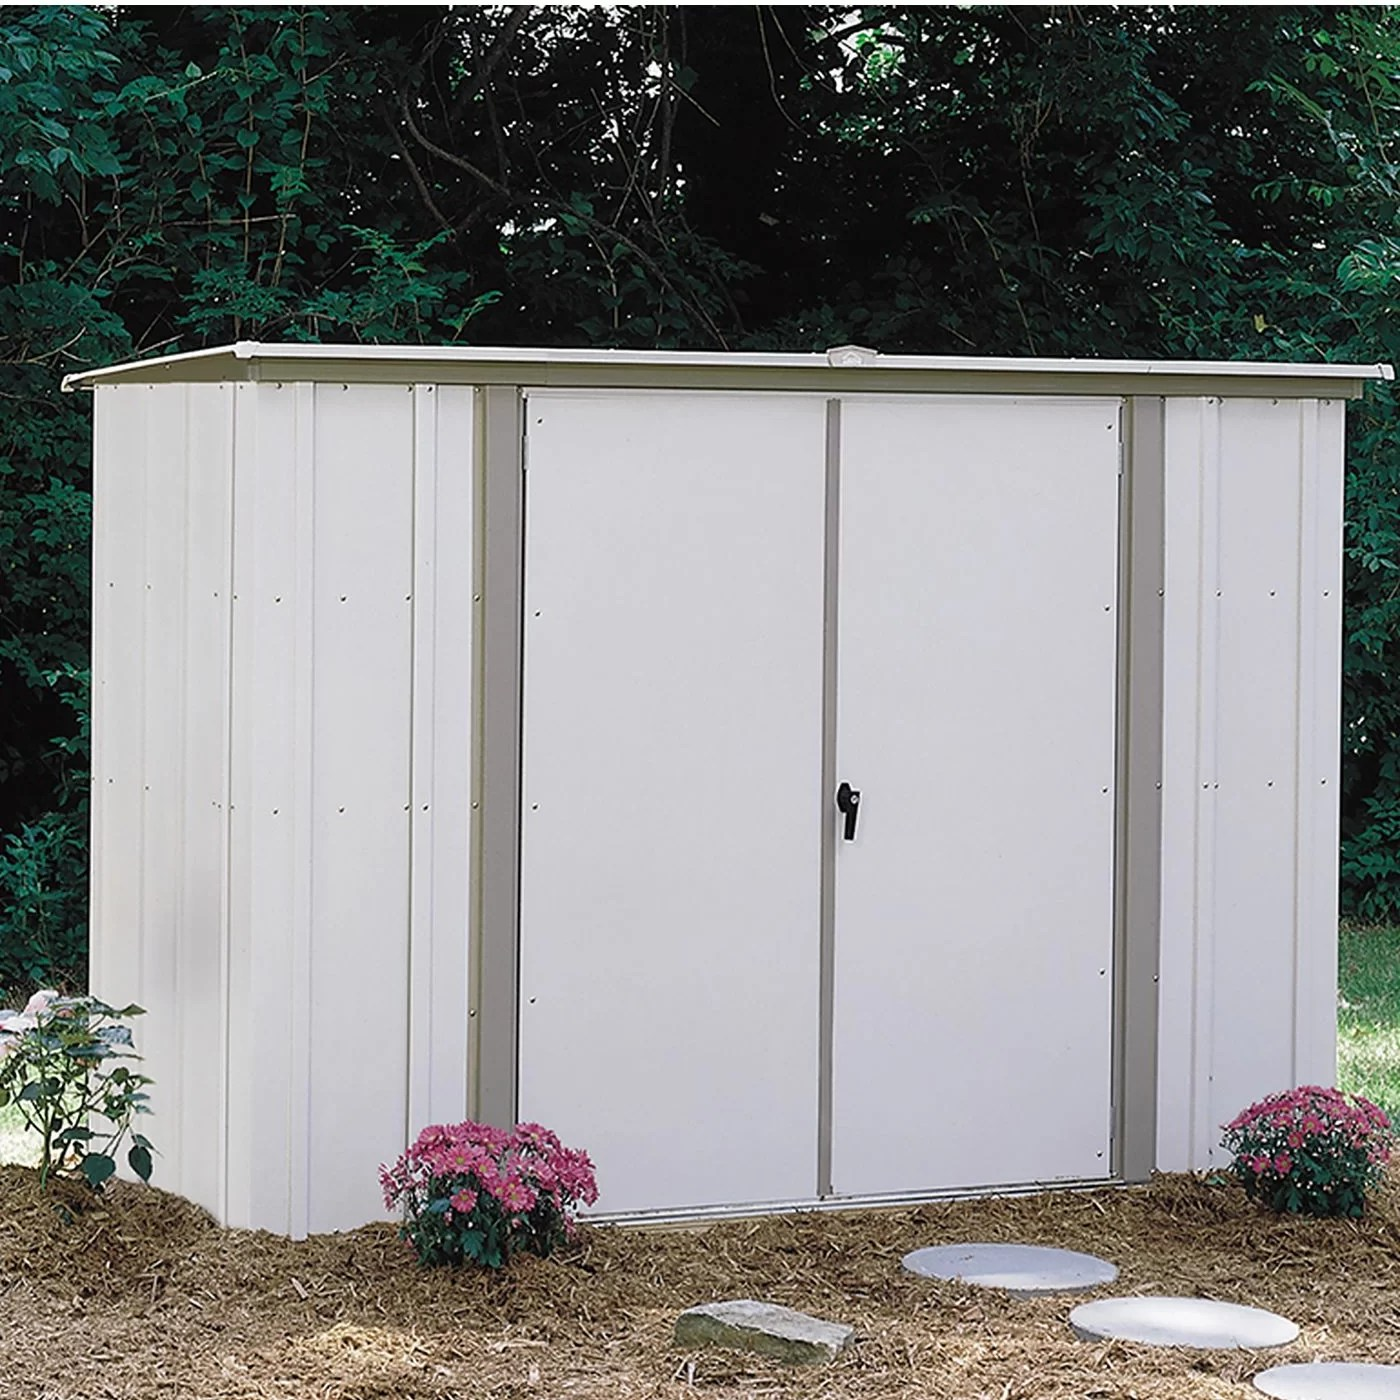 Steel Storage Sheds 8 Ft W X 3 Ft D Metal Storage Shed